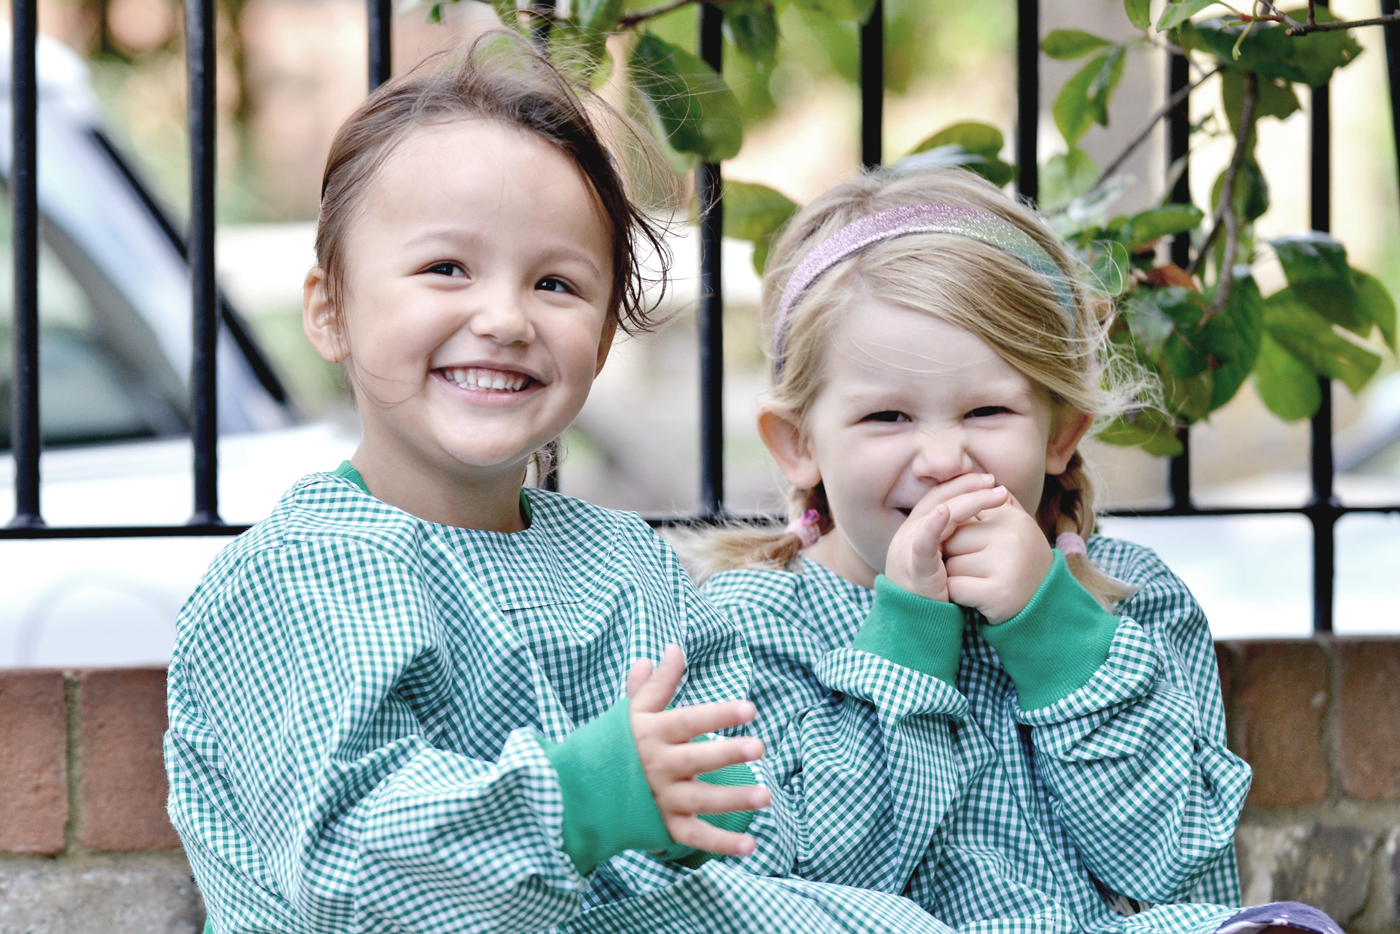 Two nursery girls laughing together